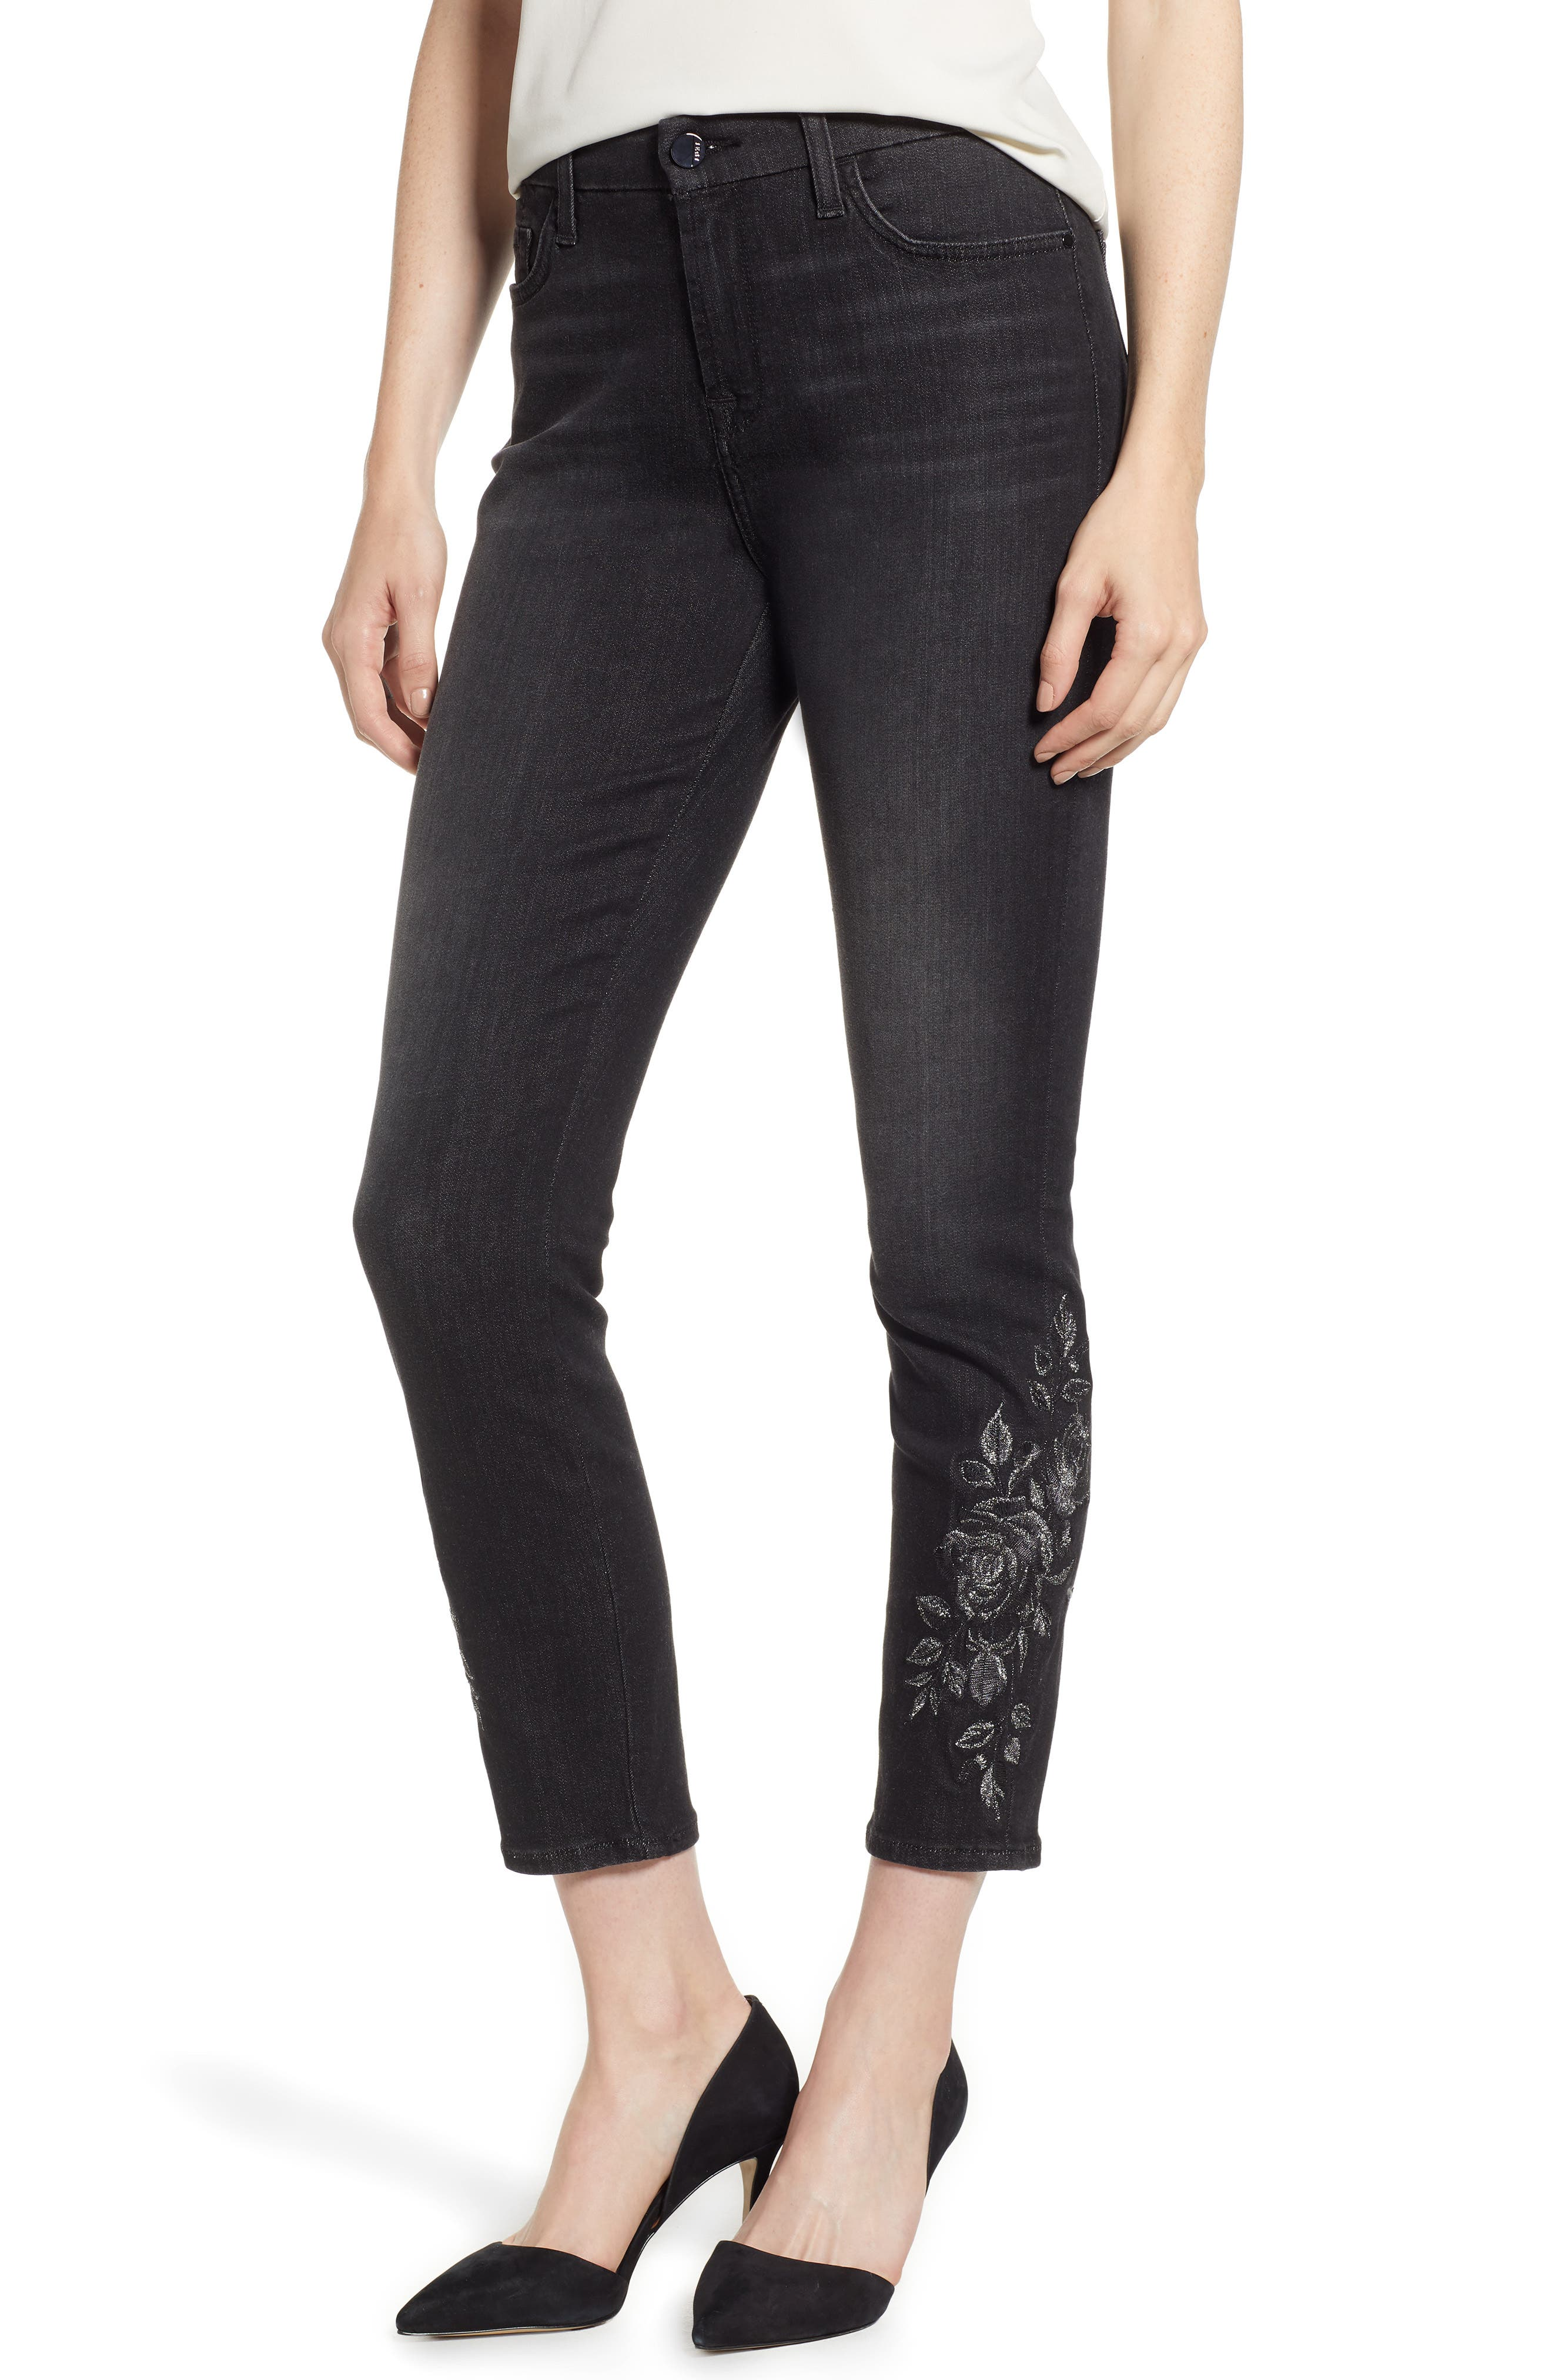 JEN7 BY 7 FOR ALL MANKIND, Embroidered Ankle Skinny Jeans, Main thumbnail 1, color, RICHE TOUCH AGED BLACK